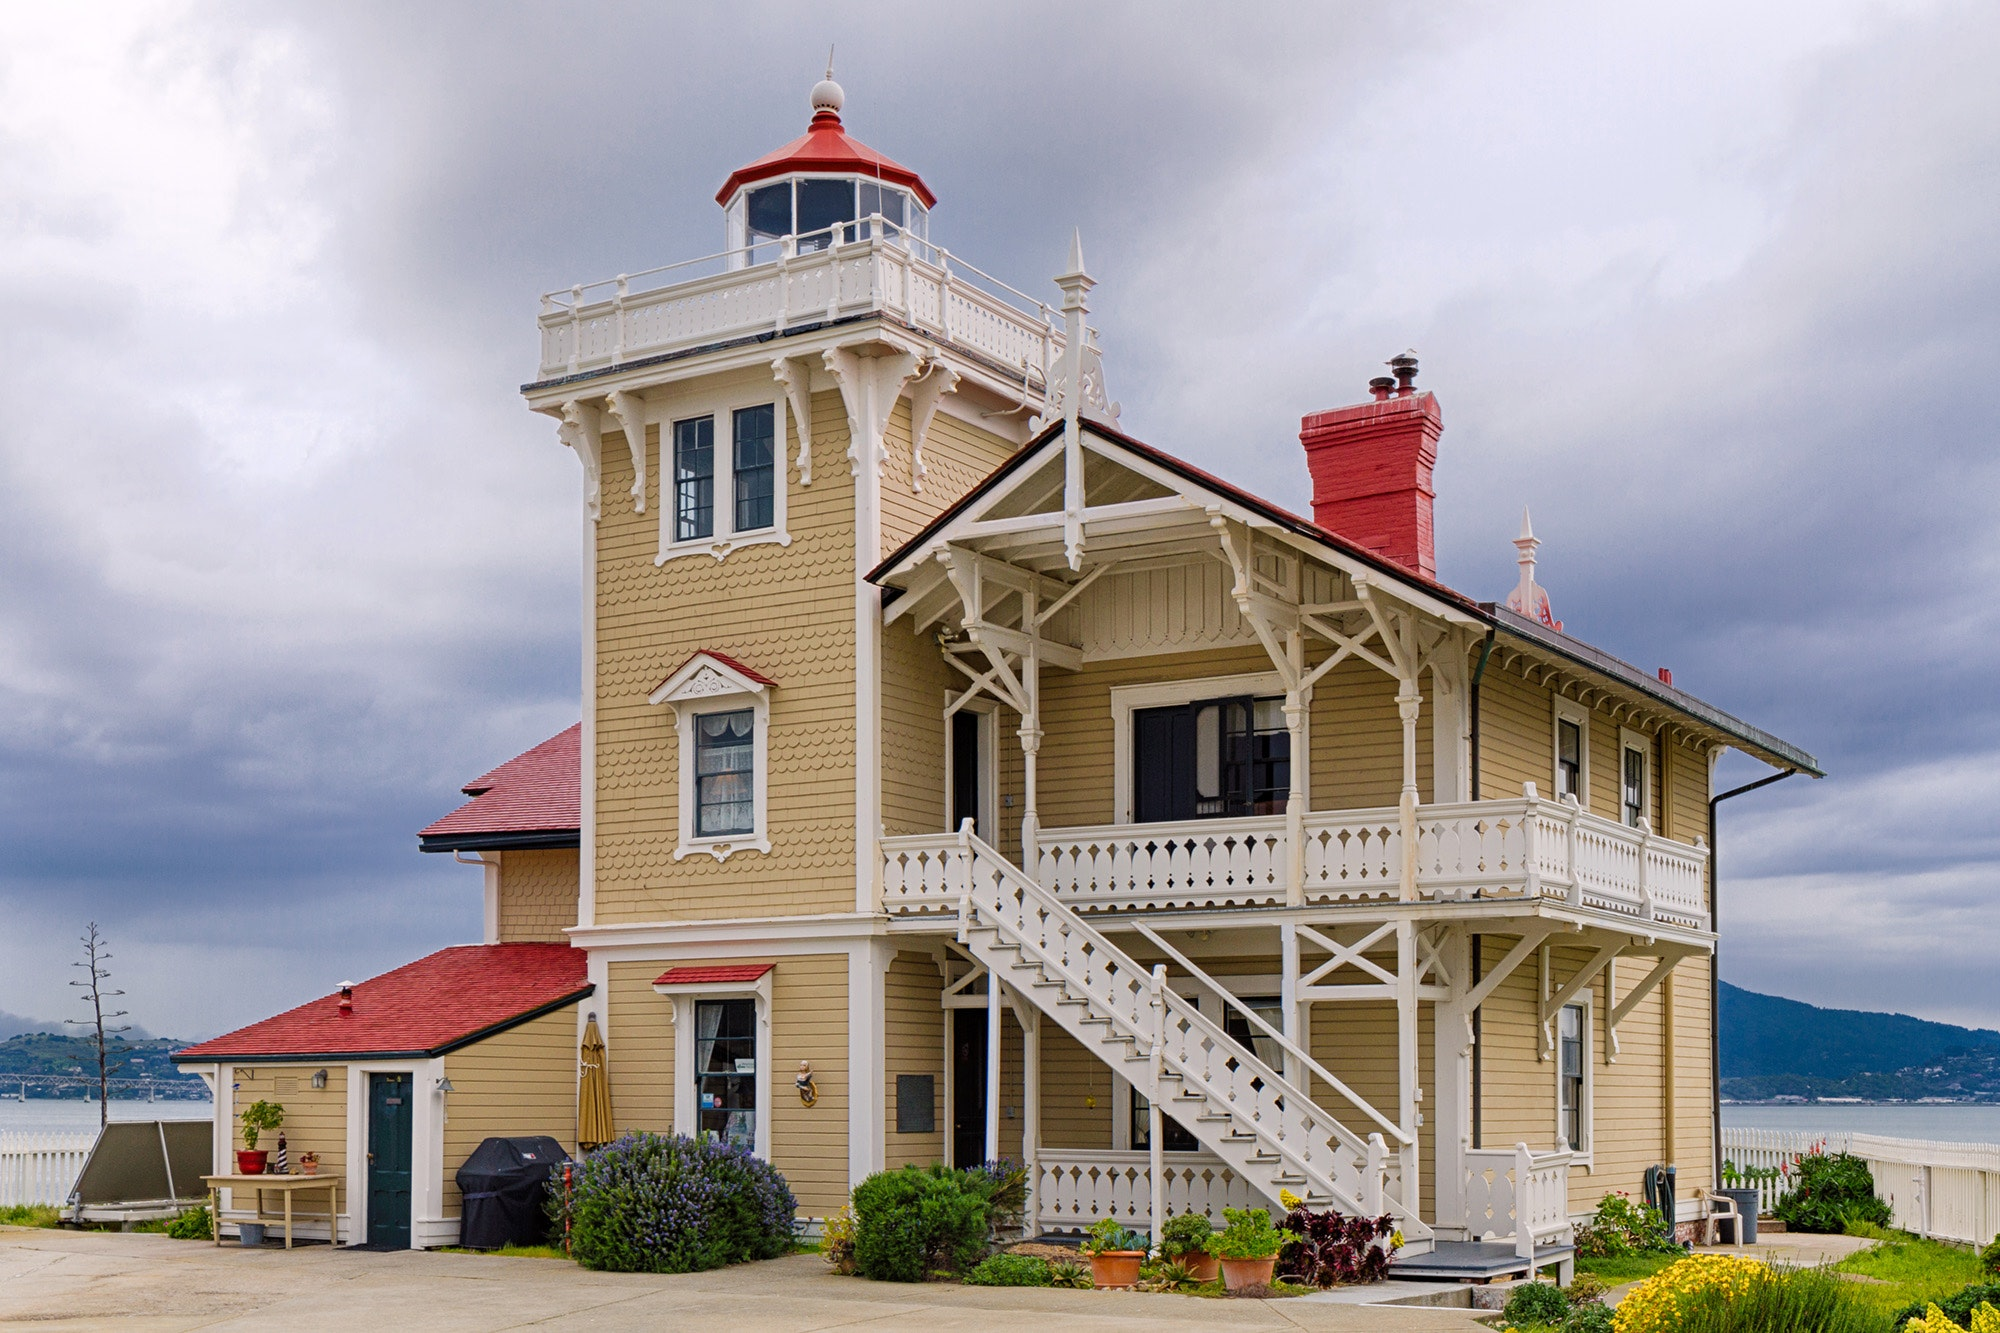 The Victorian East Brother Light Station sits on an island in the San Francisco Bay.